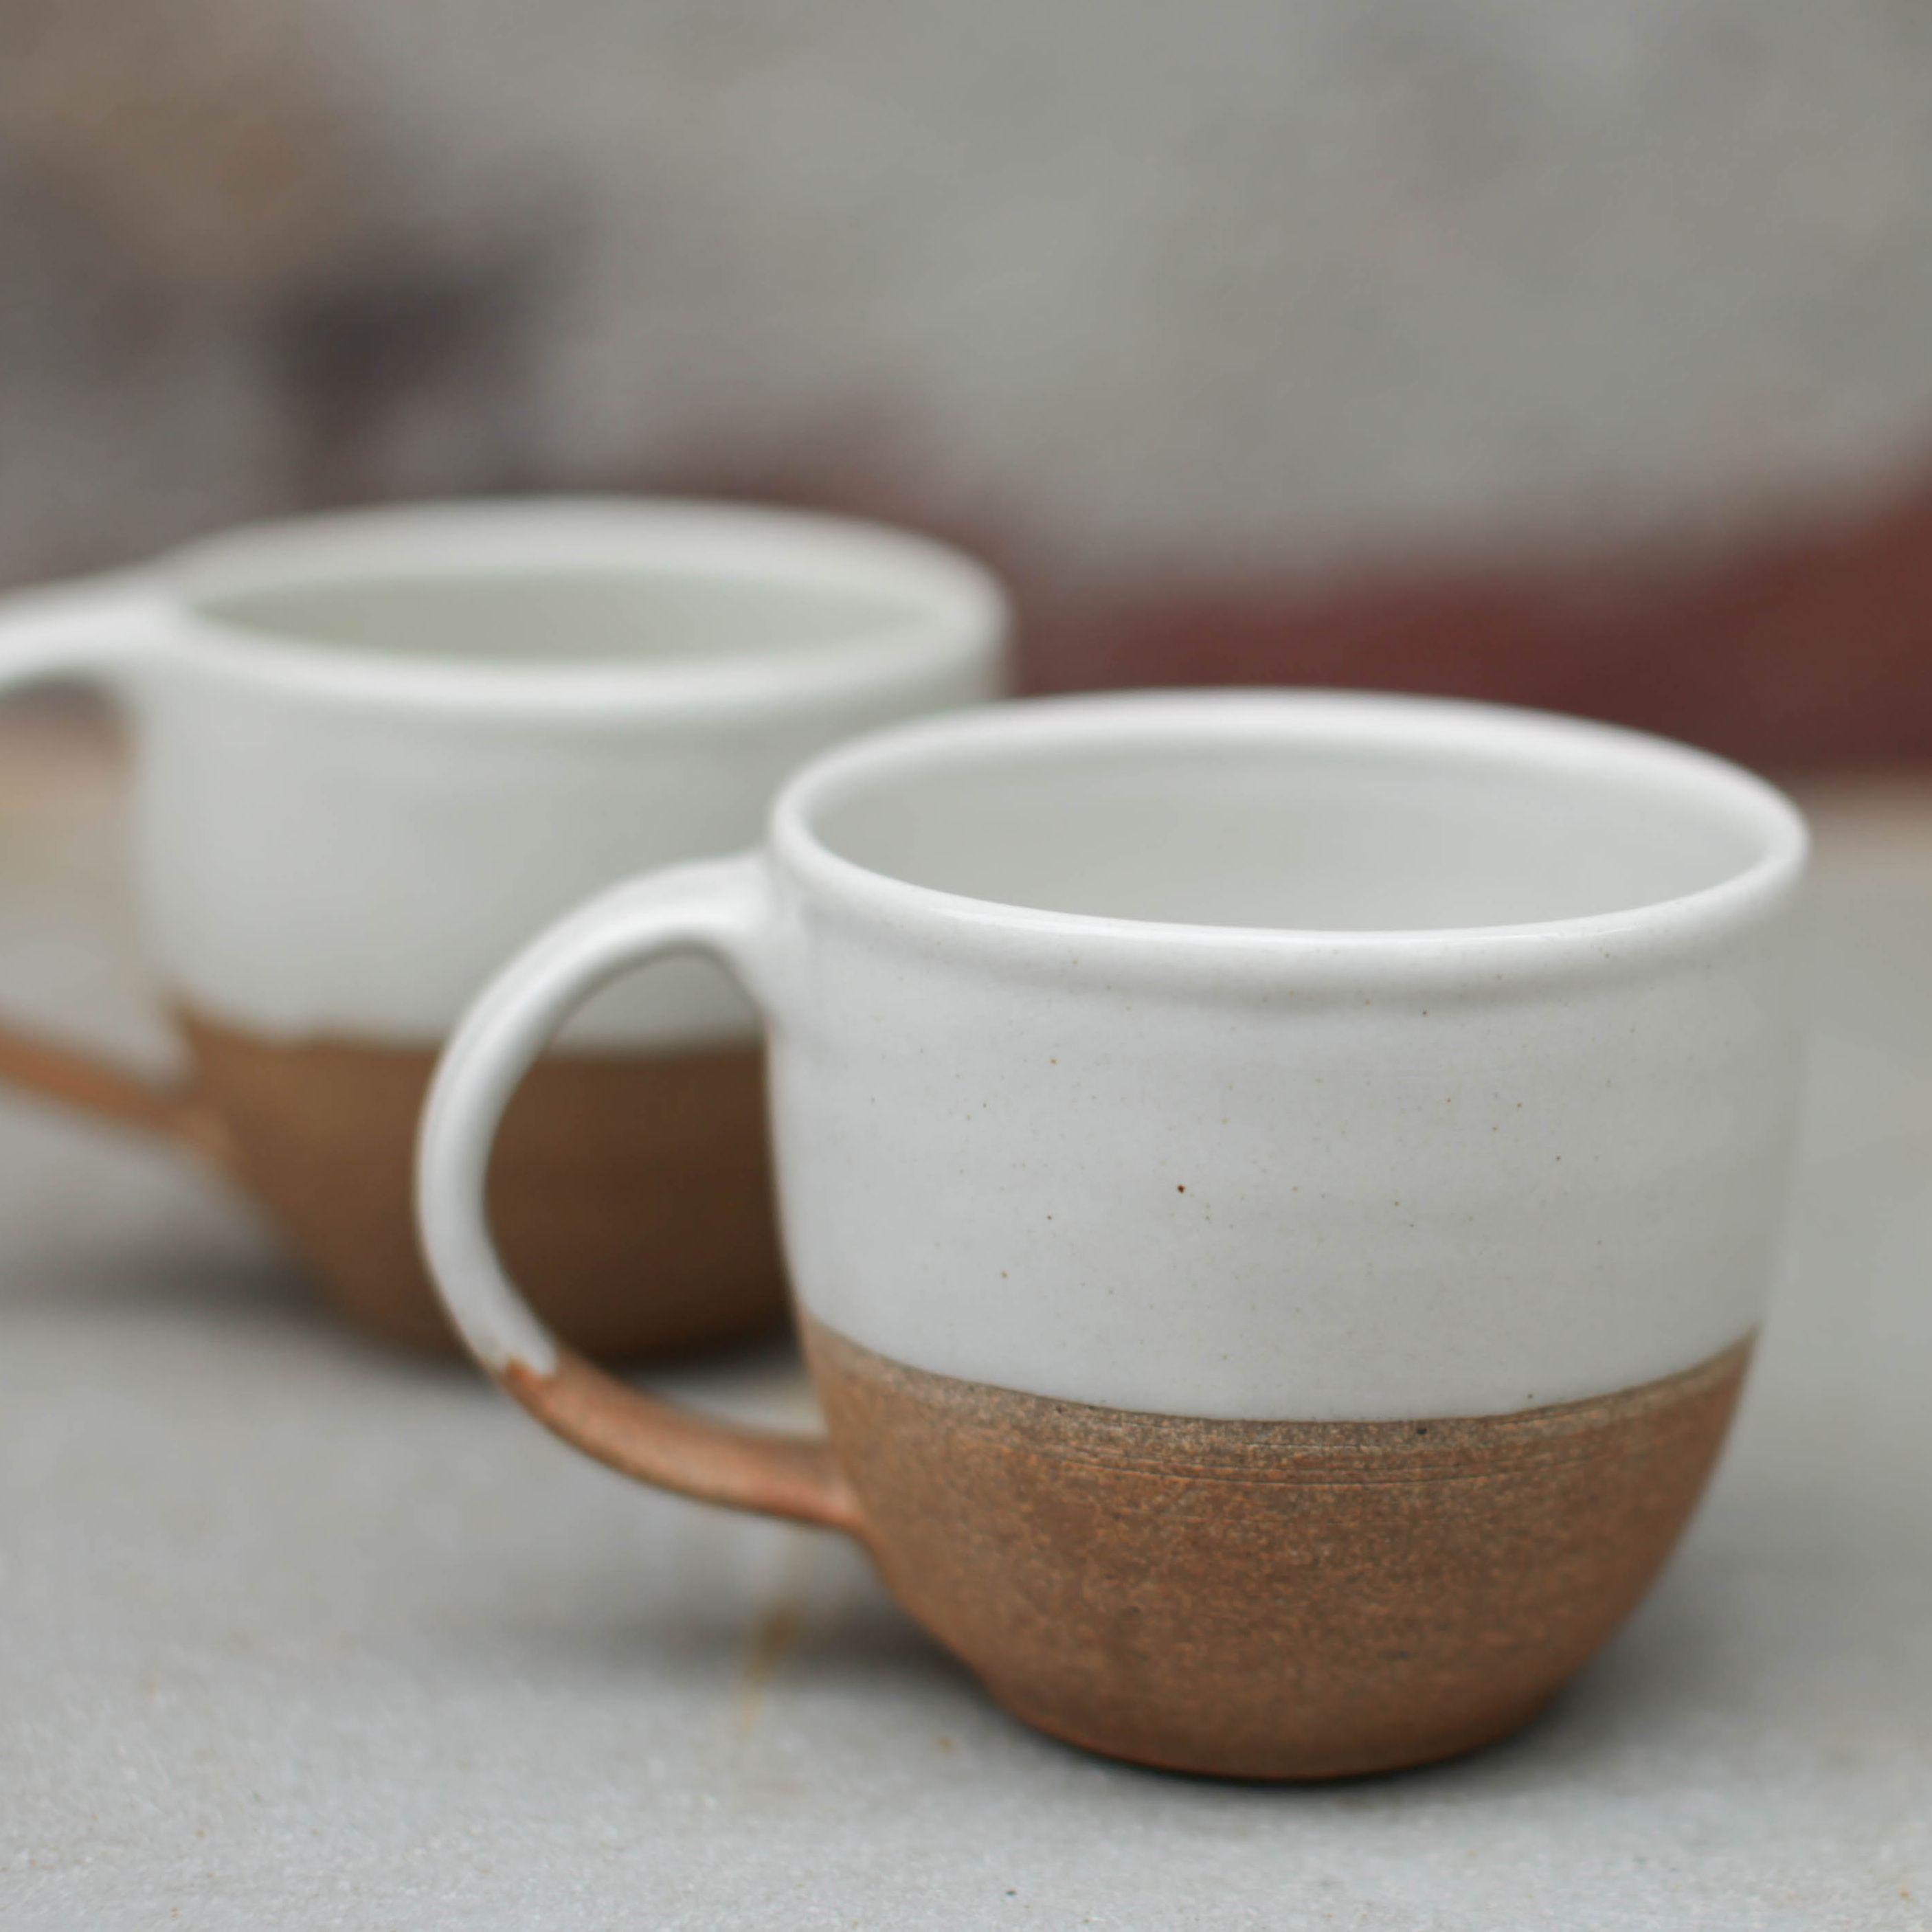 Mali mug by Nkuku. These beautiful ceramic mugs are hand crafted by  artisans so they may have slight variations.